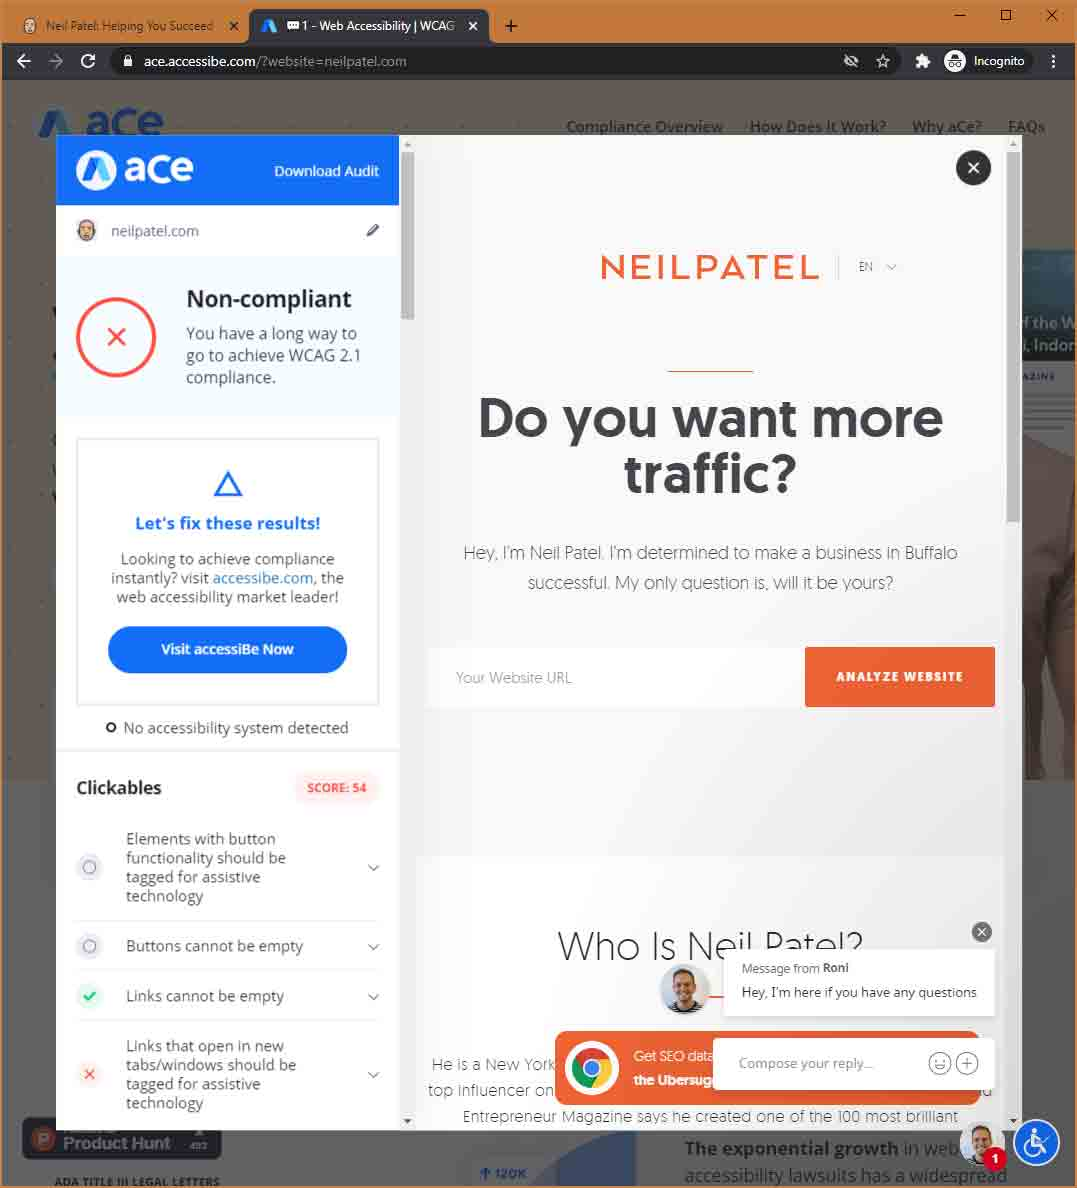 The aCe tool giving NeilPatel.com a non-compliant rating, with one score of 54 visible.